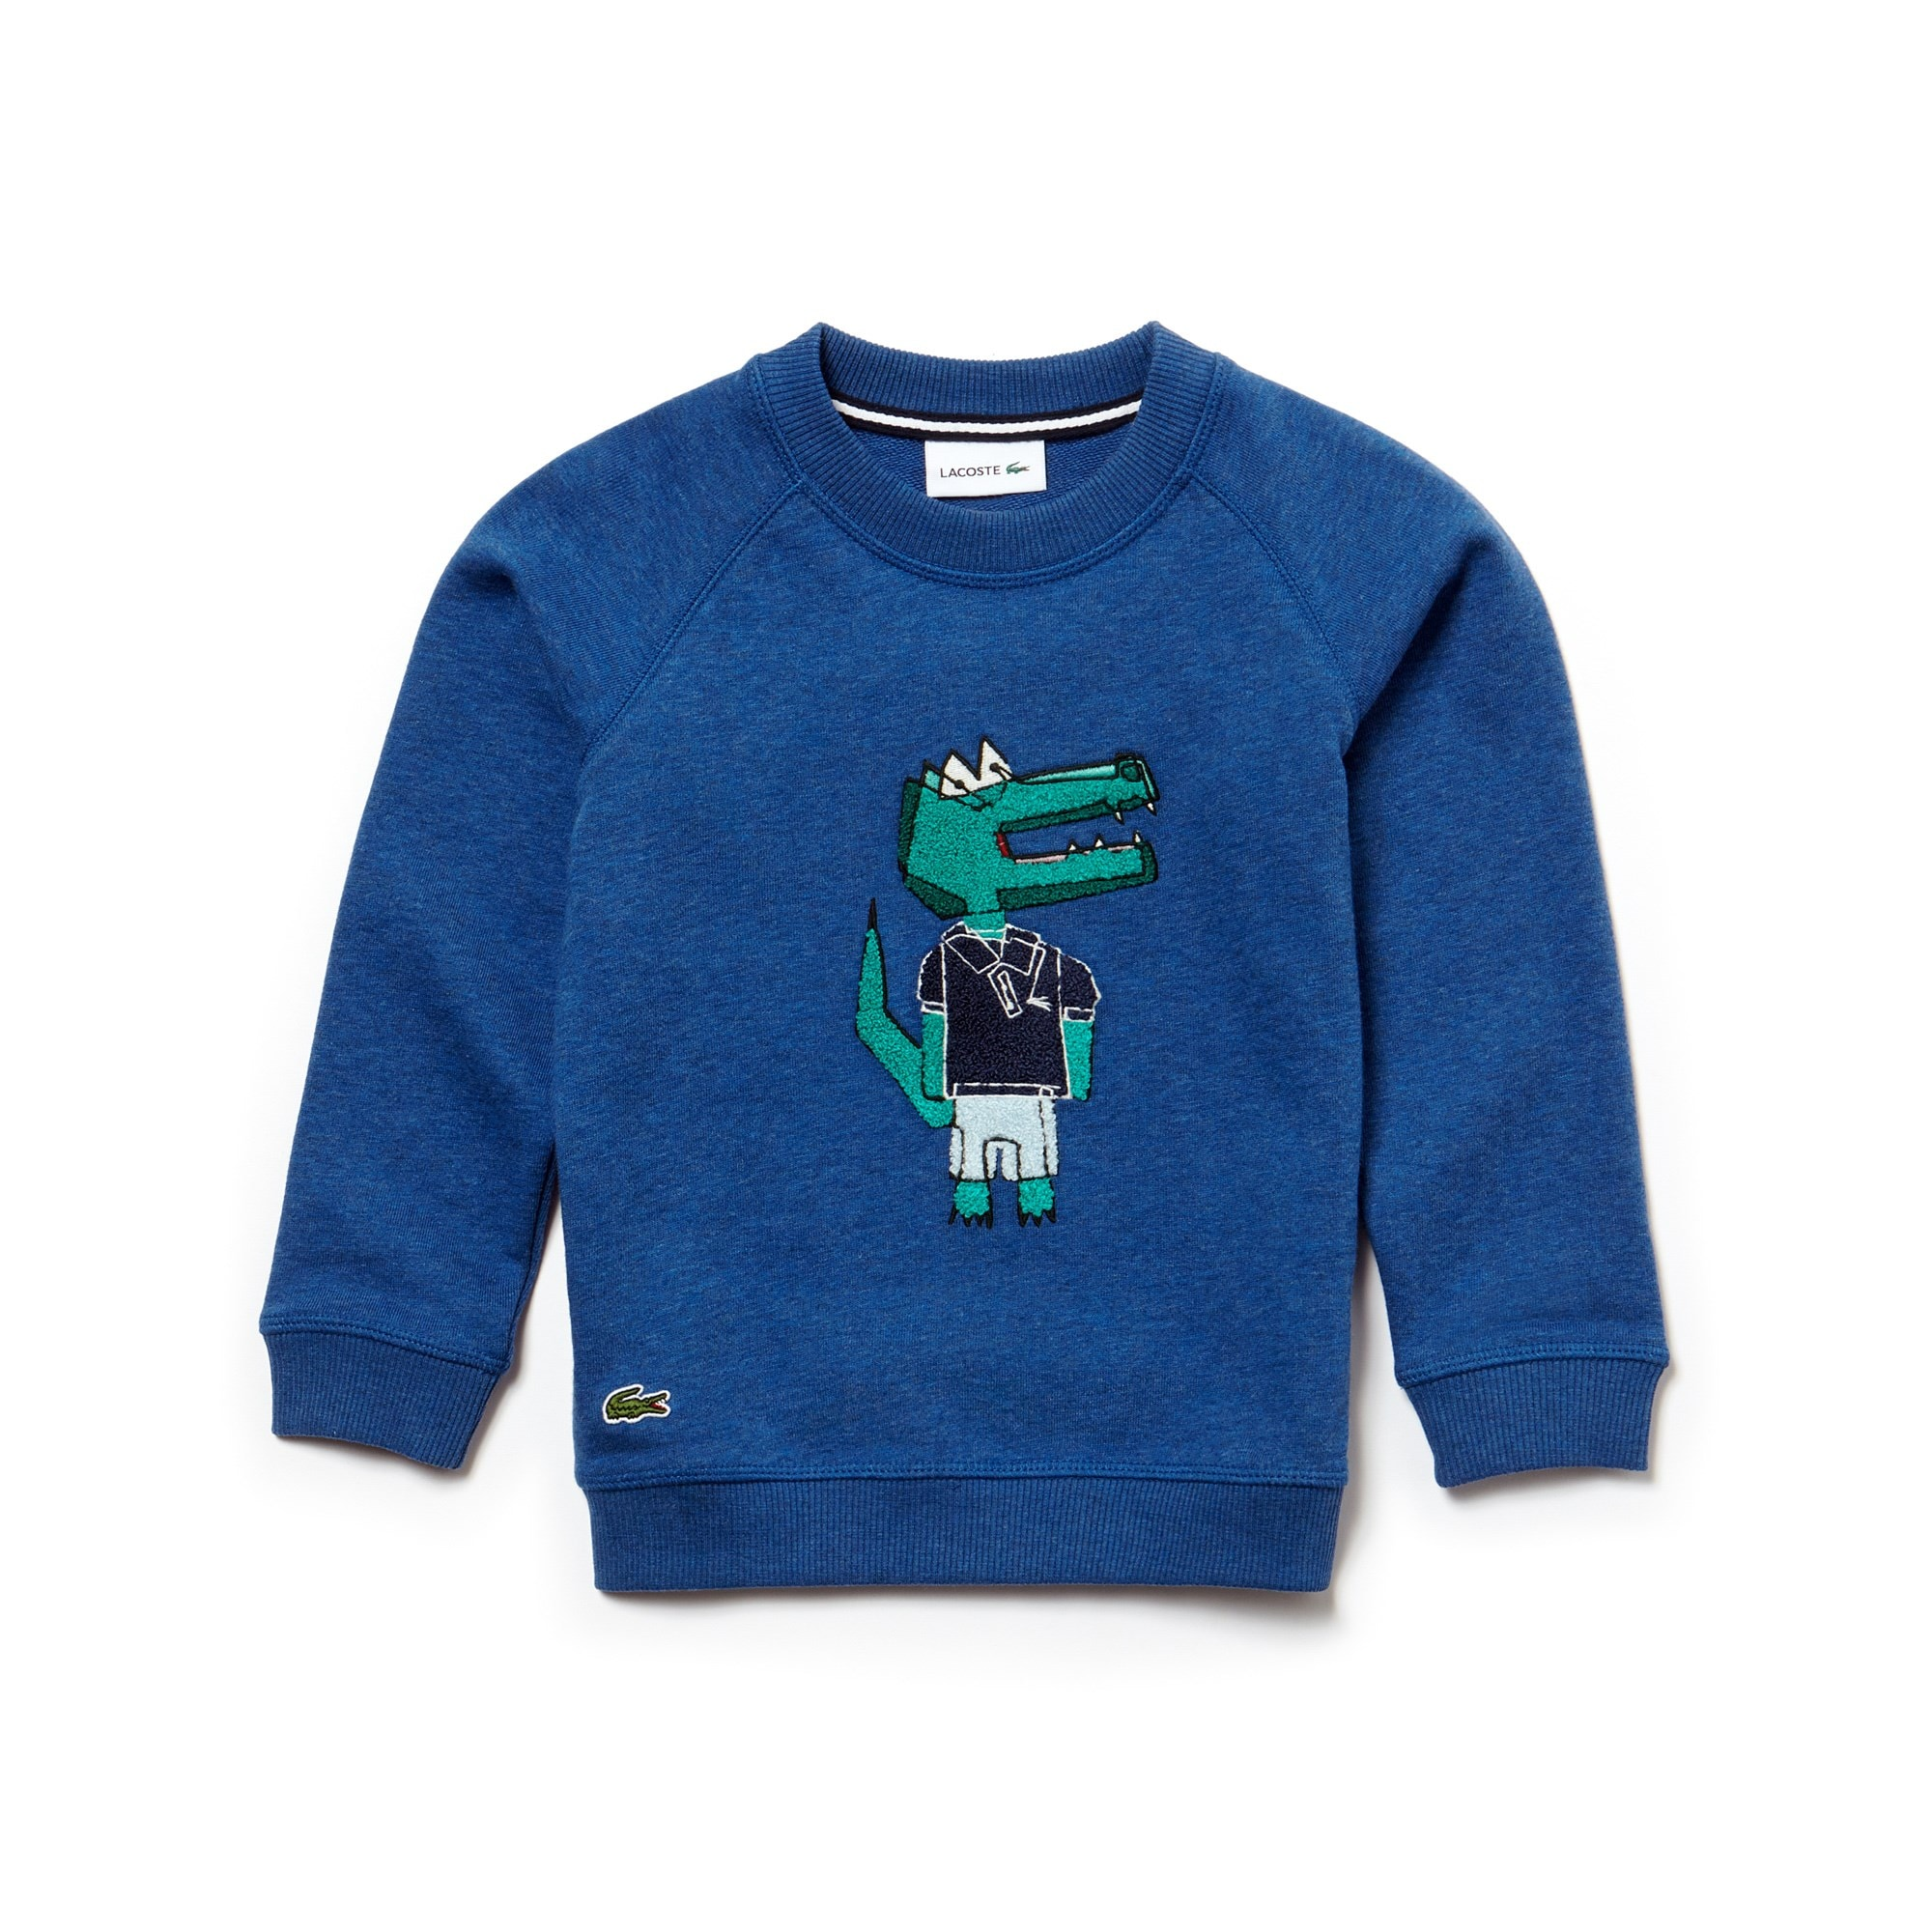 Boys' Crew Neck Crocodile Indigo Fleece Sweatshirt